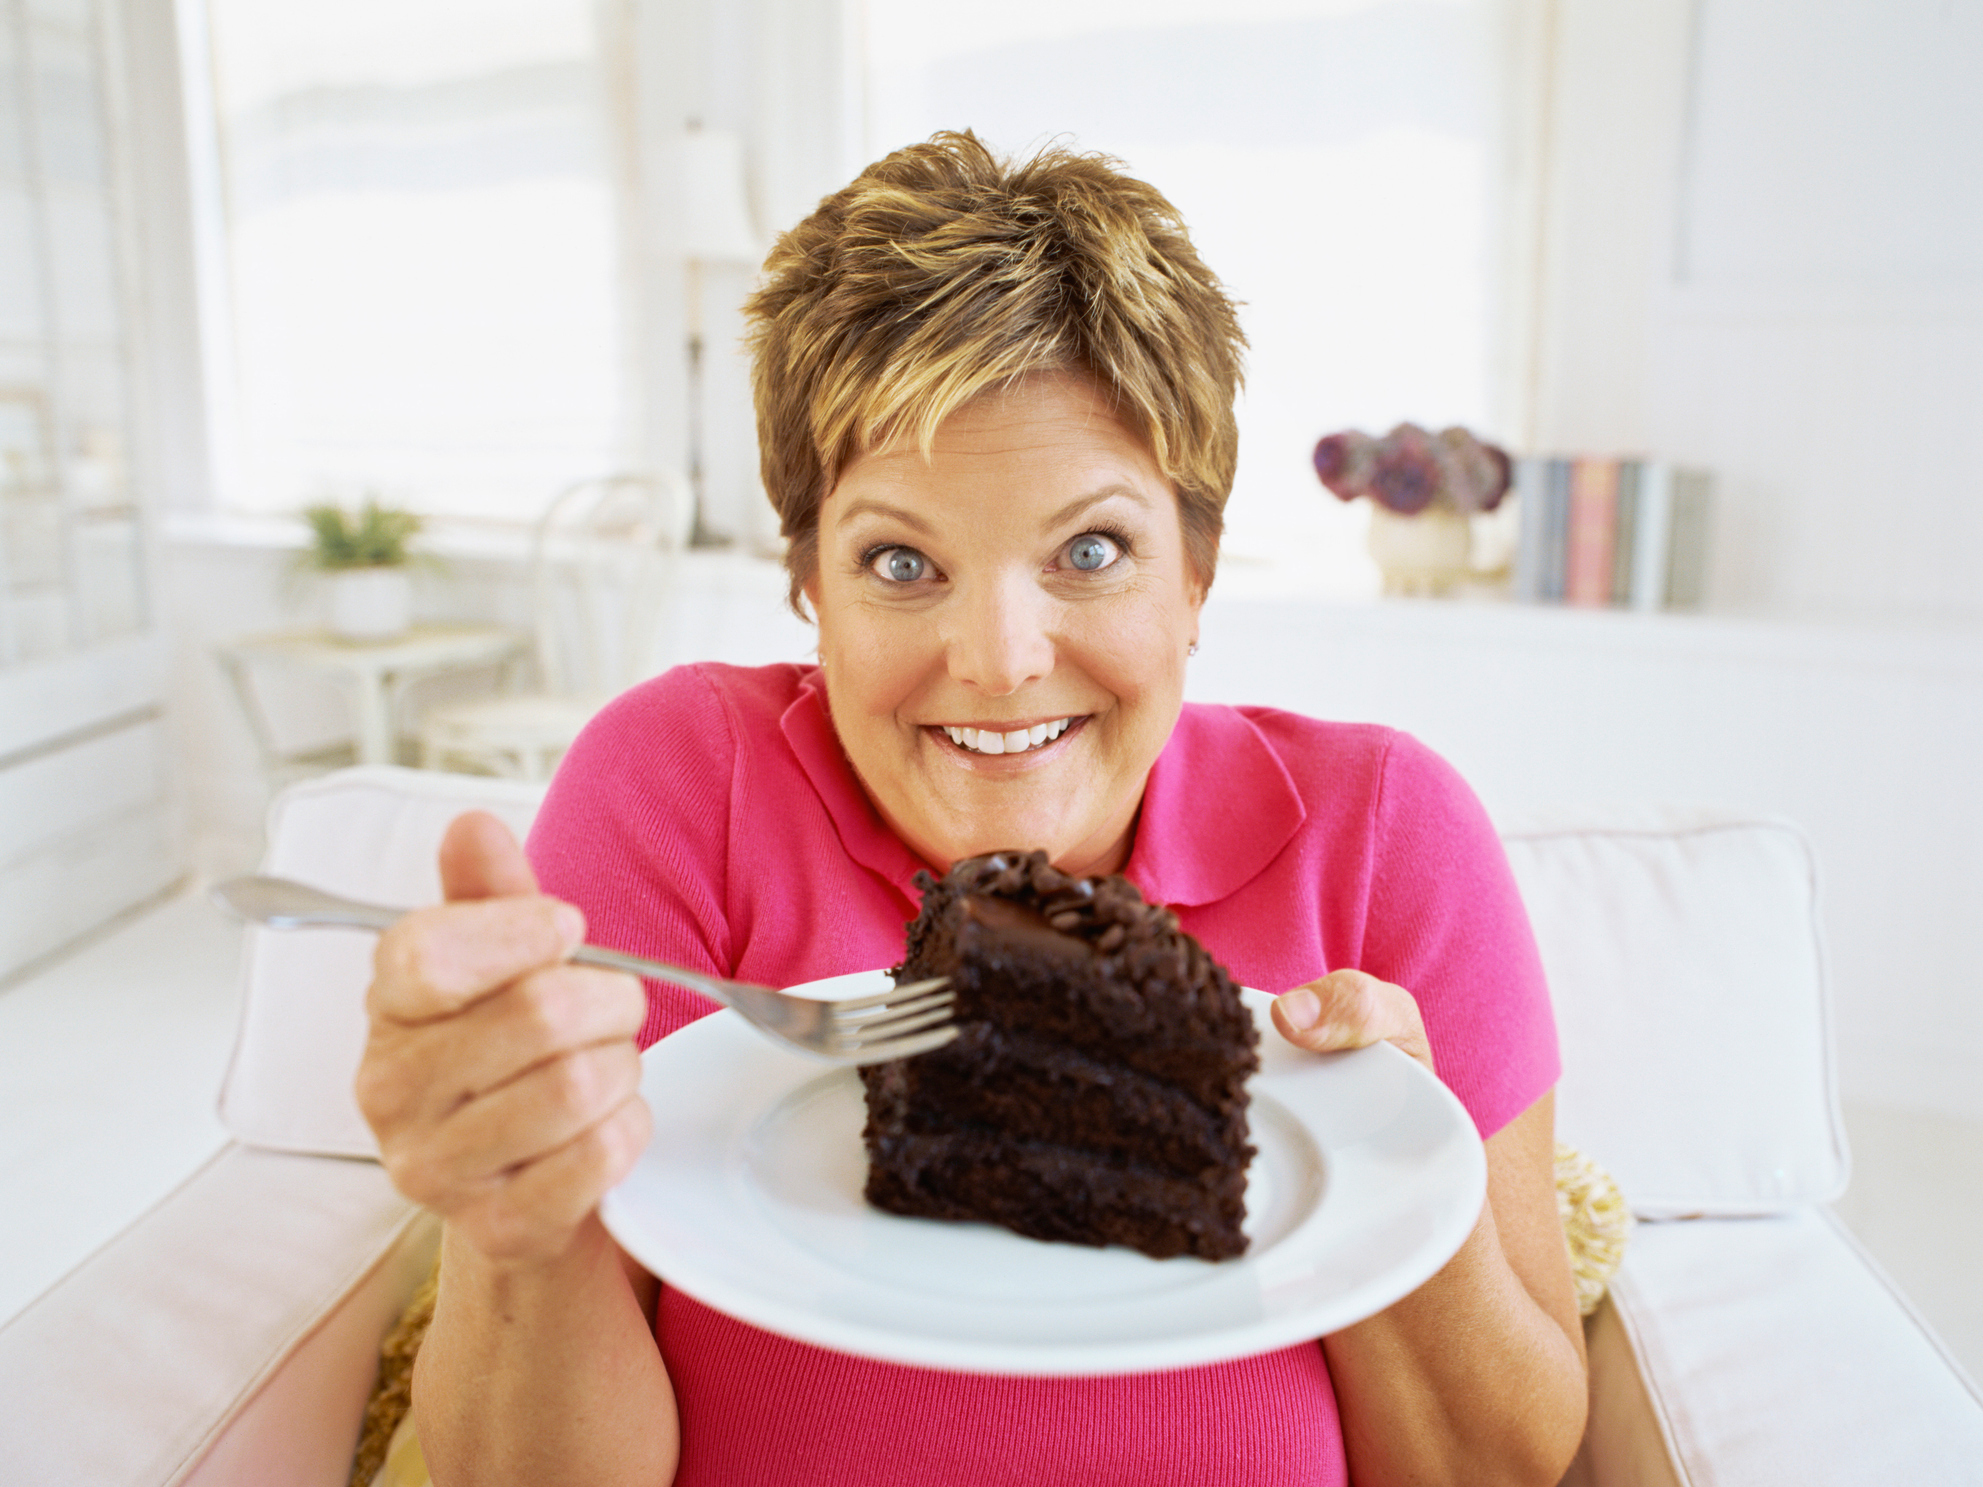 Could a big breakfast including cake really be the easiest weight-loss hack?